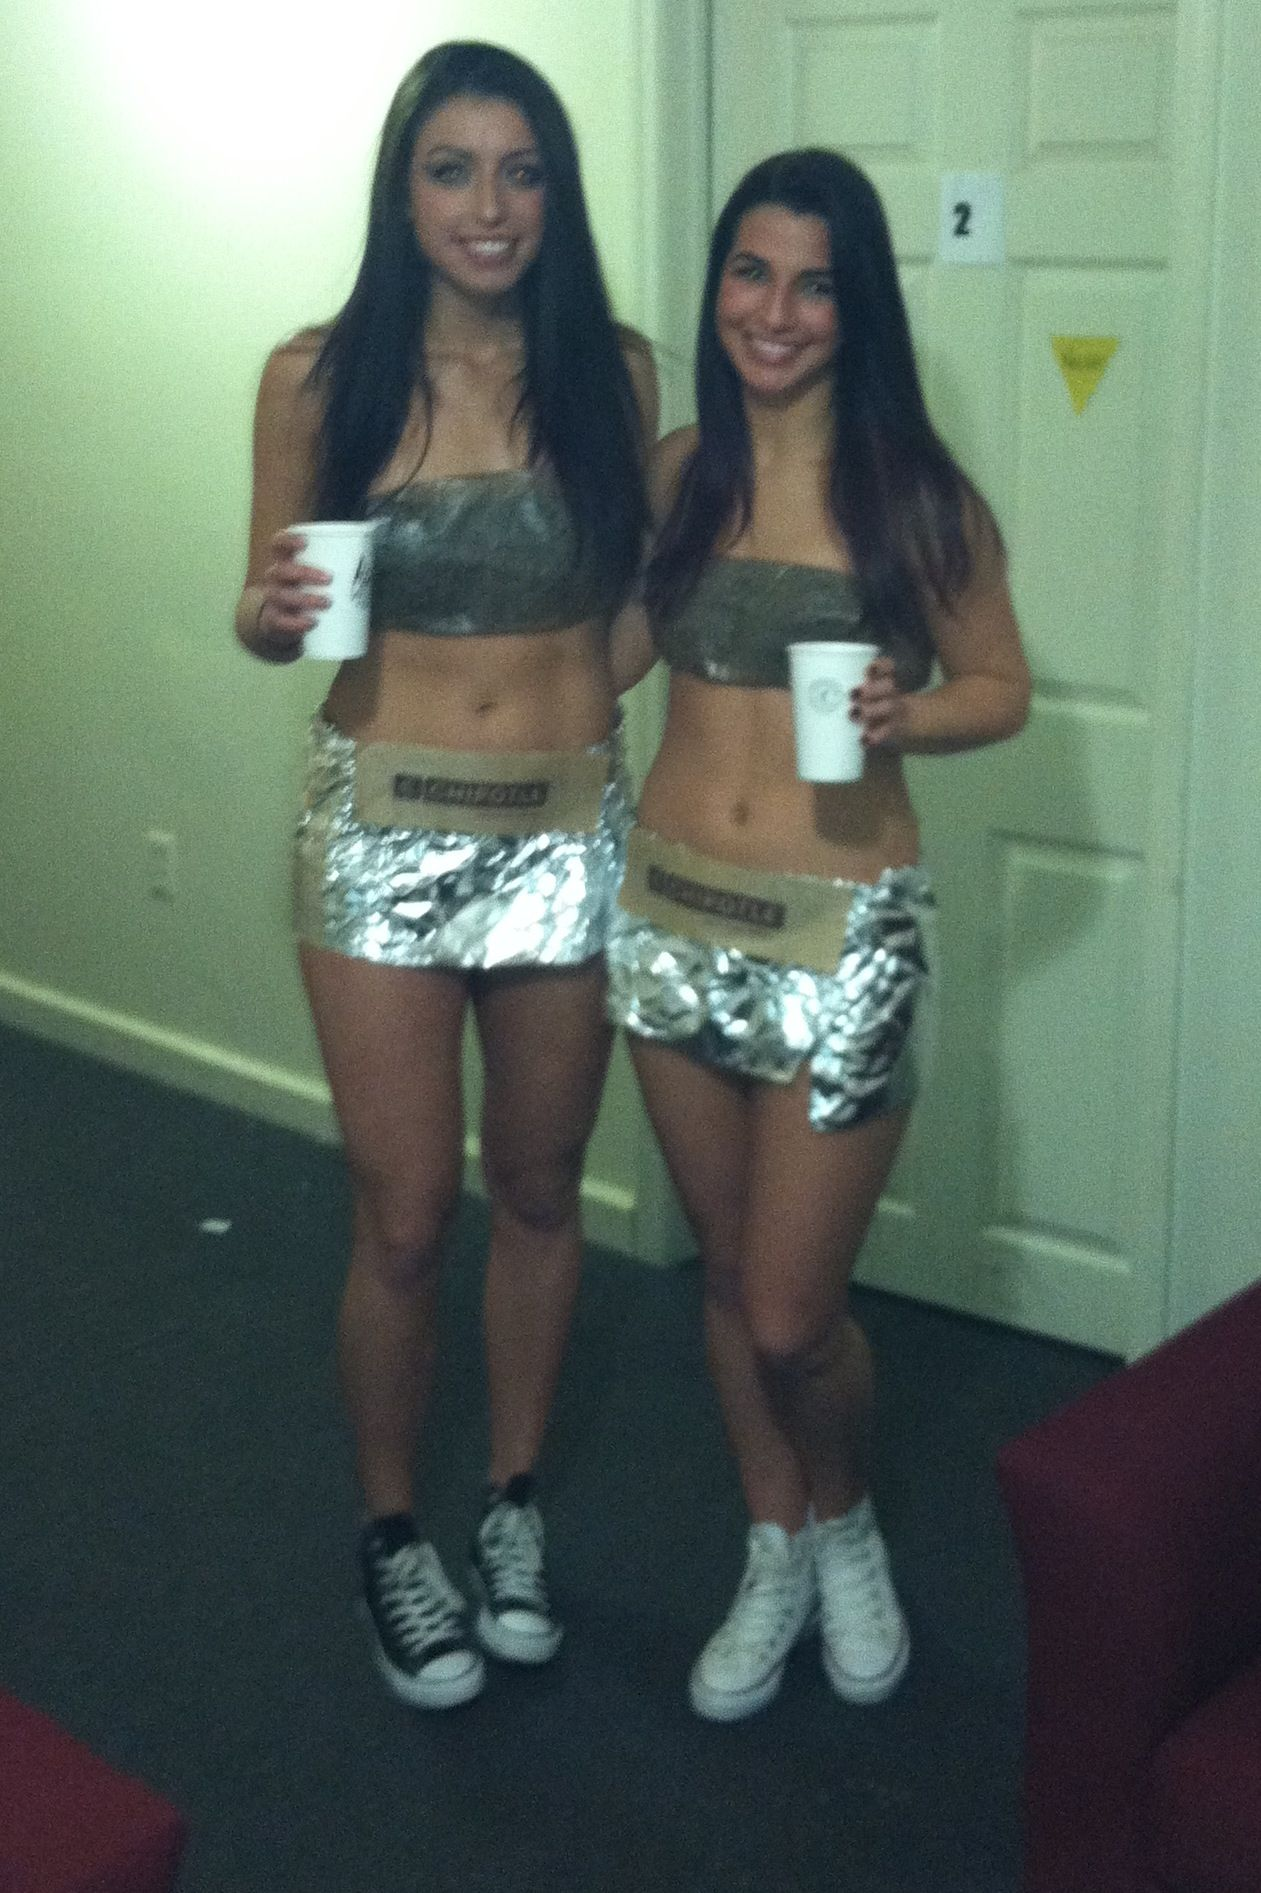 60 ...  sc 1 st  PinMash & Chipotle Costume Pinterest Pictures to Pin on Pinterest - PinMash